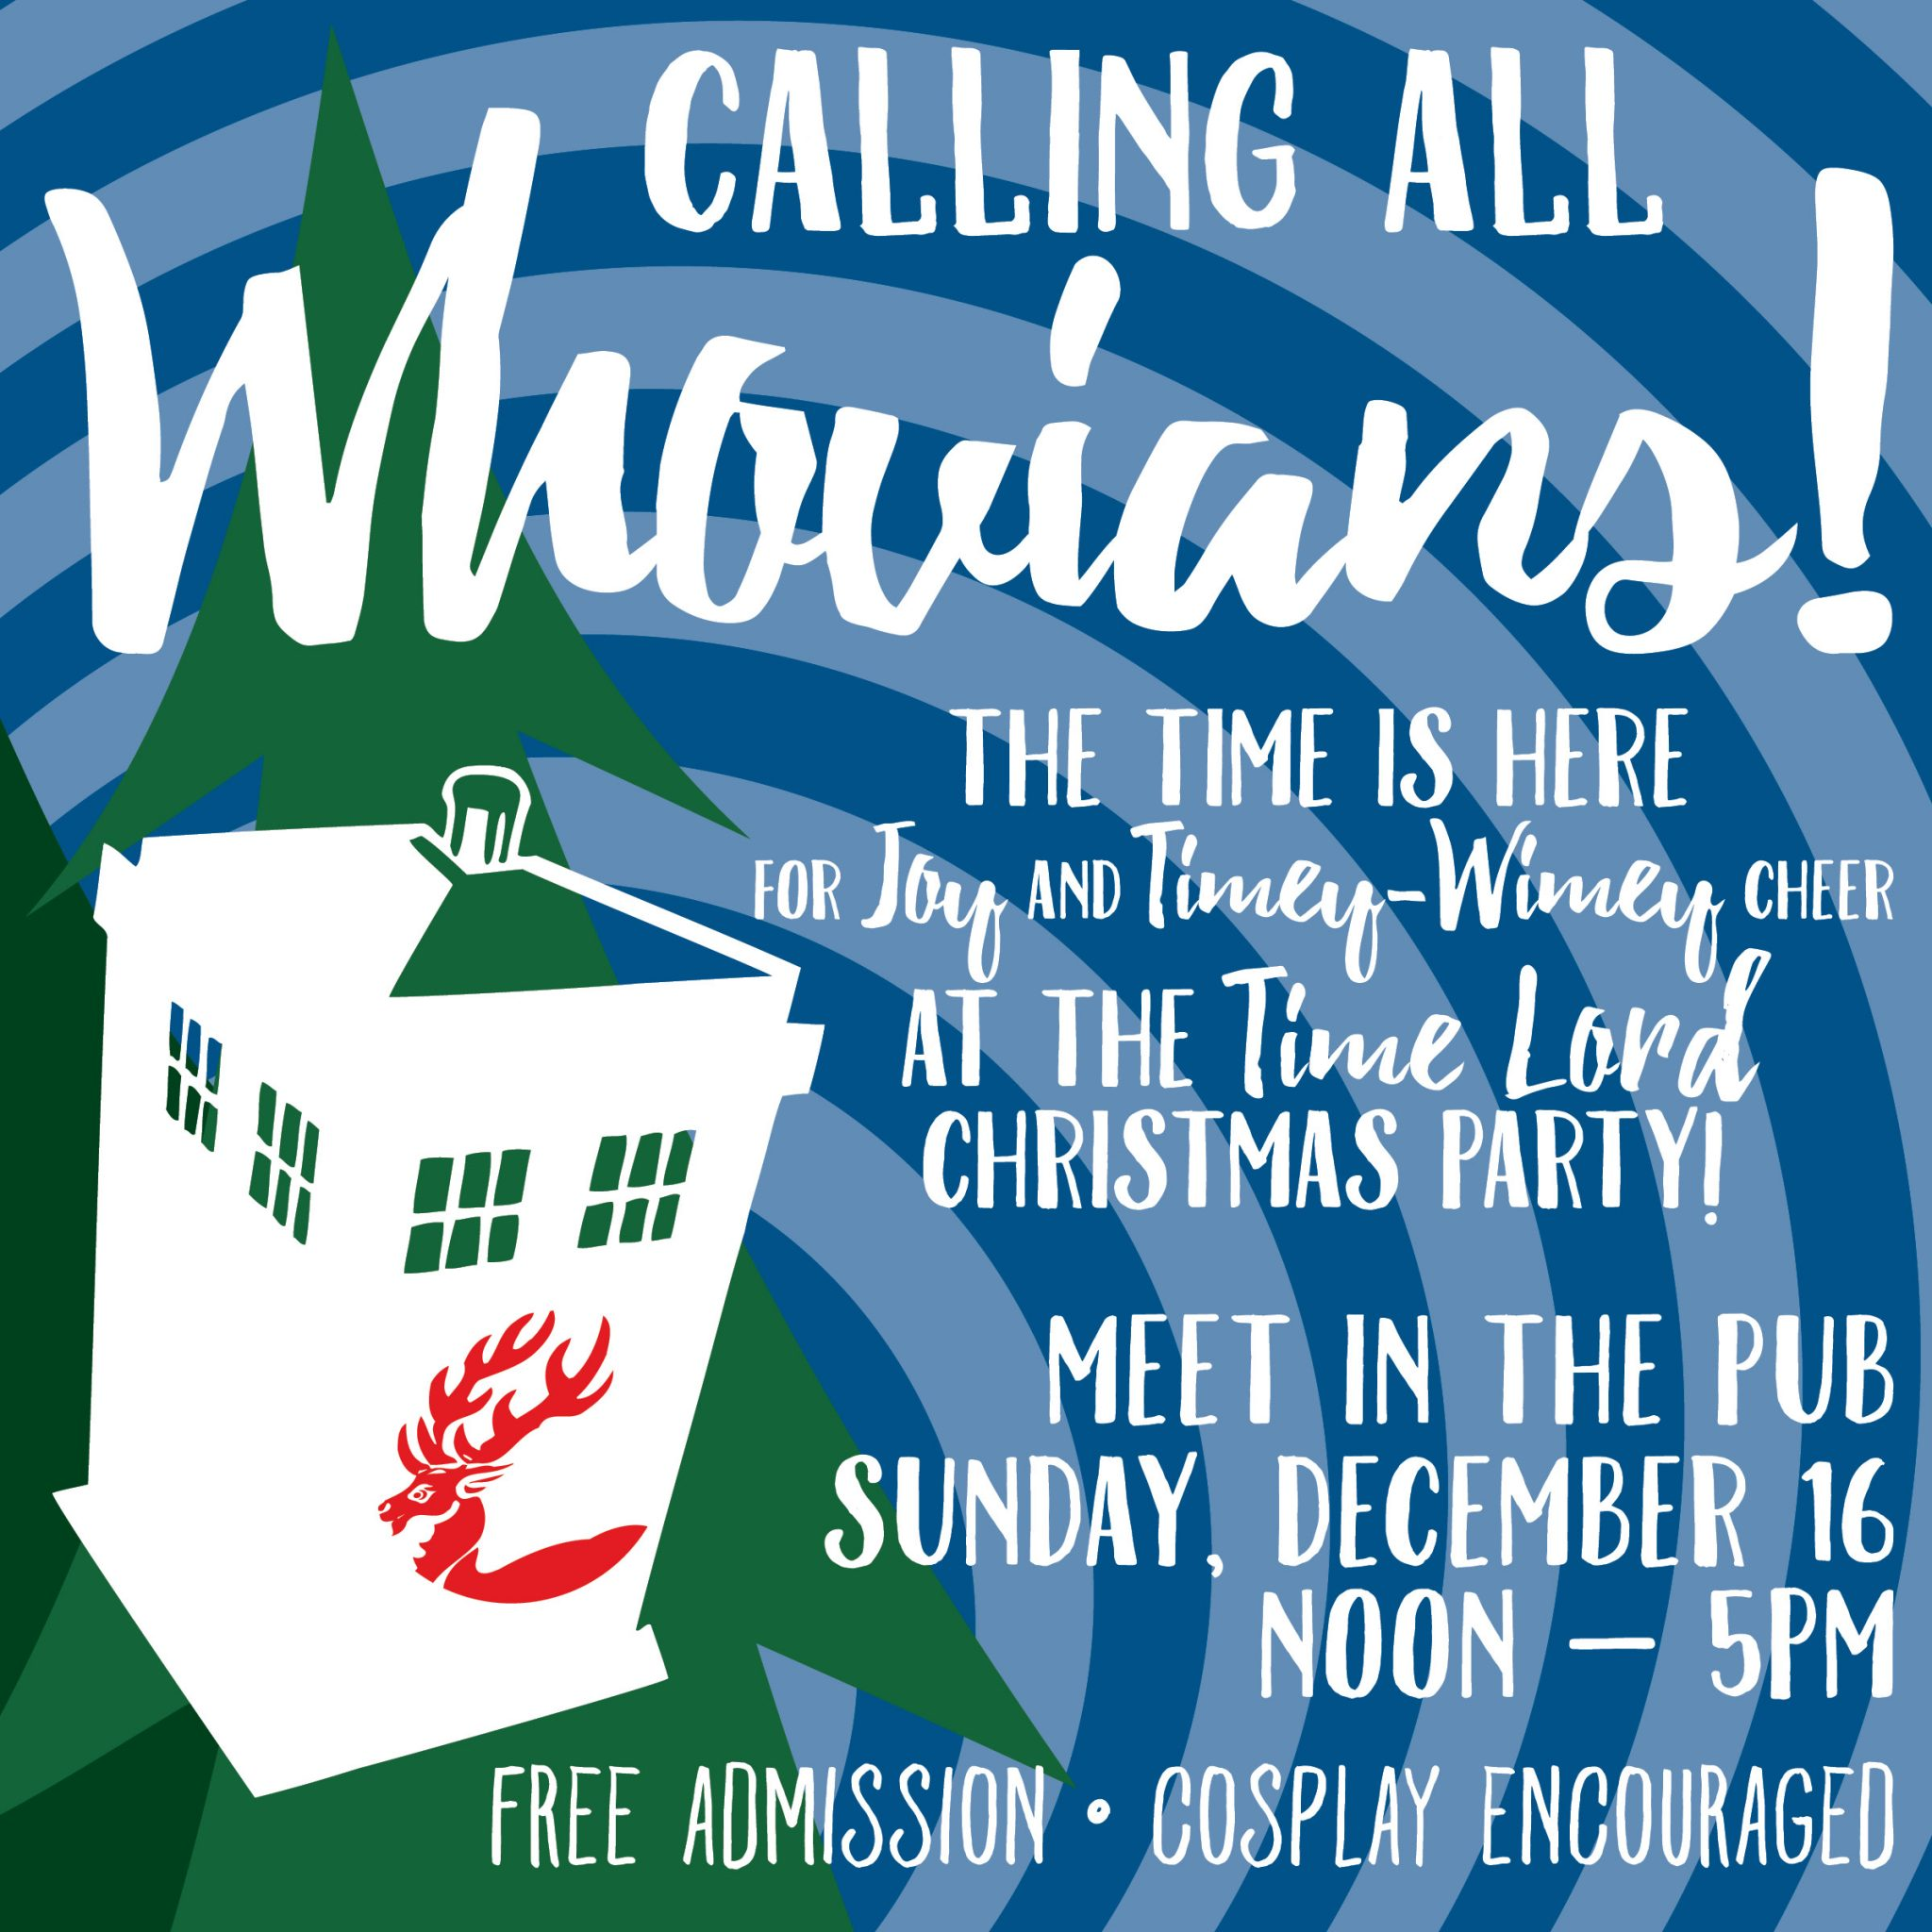 Calling all Whovians! The Time is Here for Joy and Timey-Wimey cheer at the Time Lord Christmas party! Meet in the Pub, Sunday, December 16 from Noon to 5pm. Free Admission, Cosplay Encouraged.